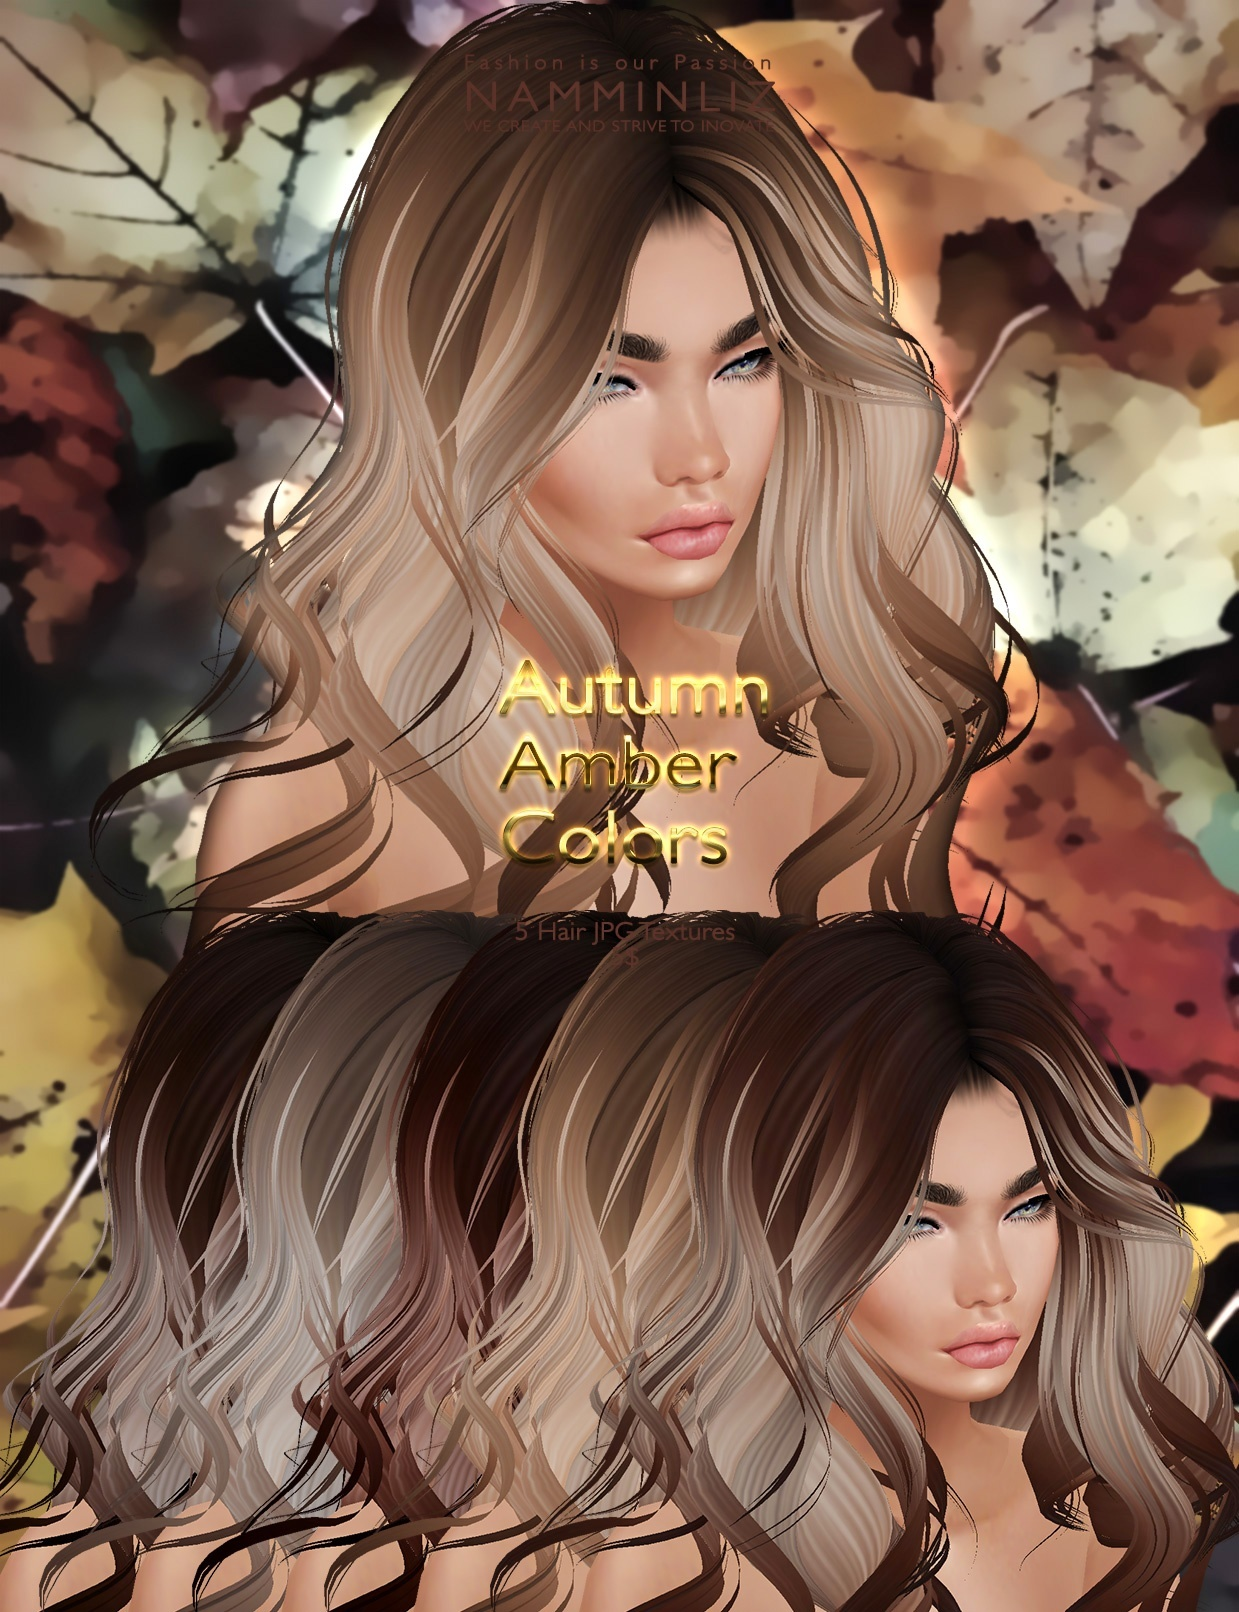 Autumn Amber colors 5 Hair JPG Textures imvu NAMMINLIZ